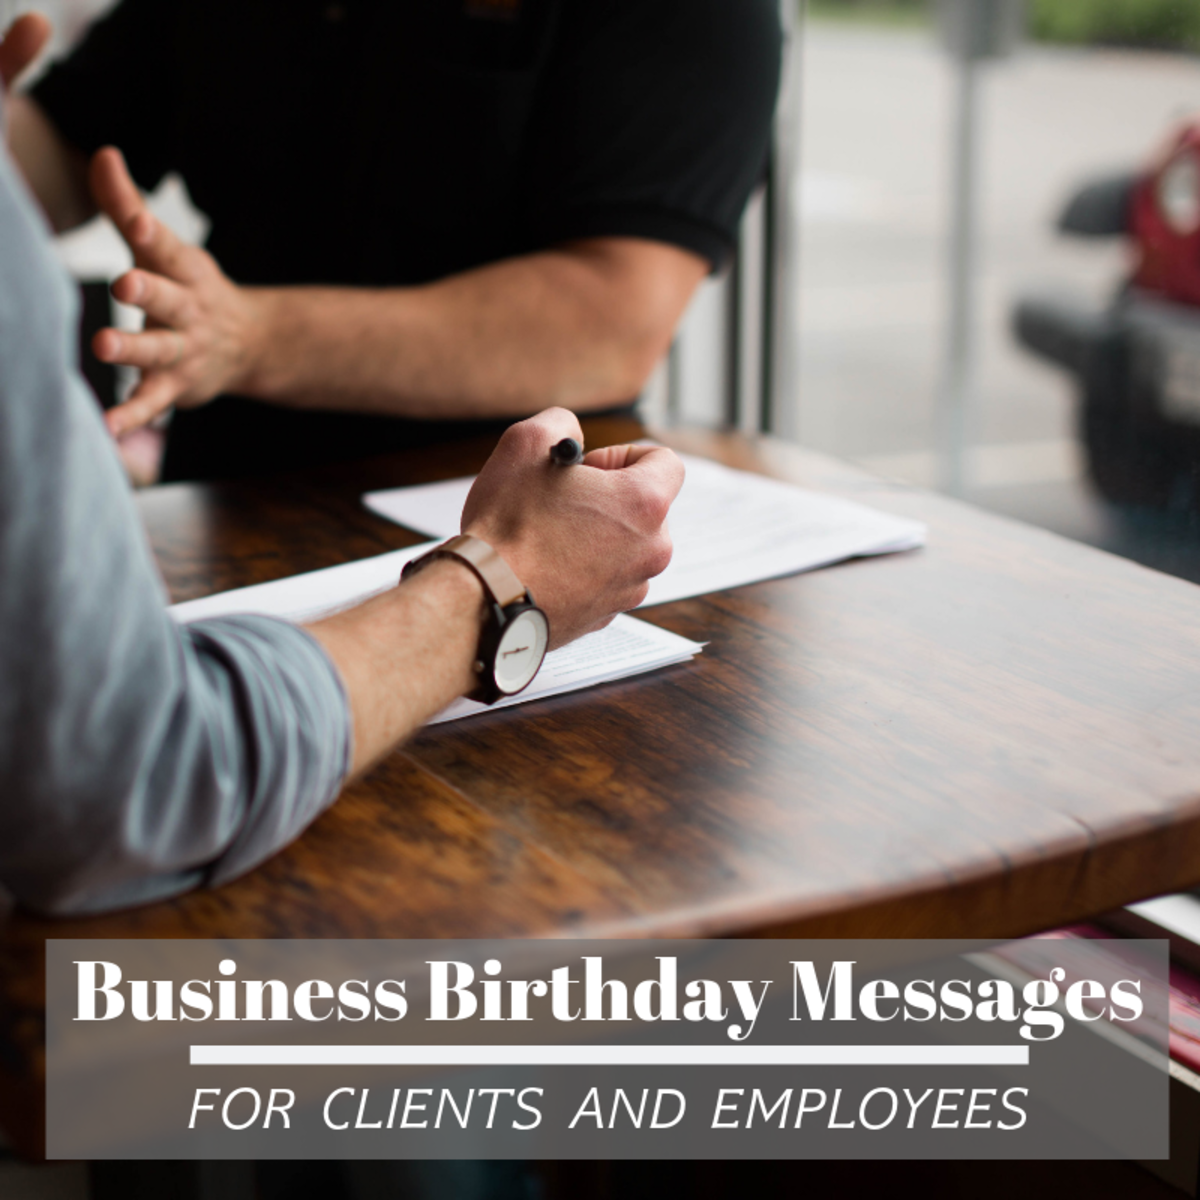 Business Birthday Card Messages: Wishes for Clients and Employees